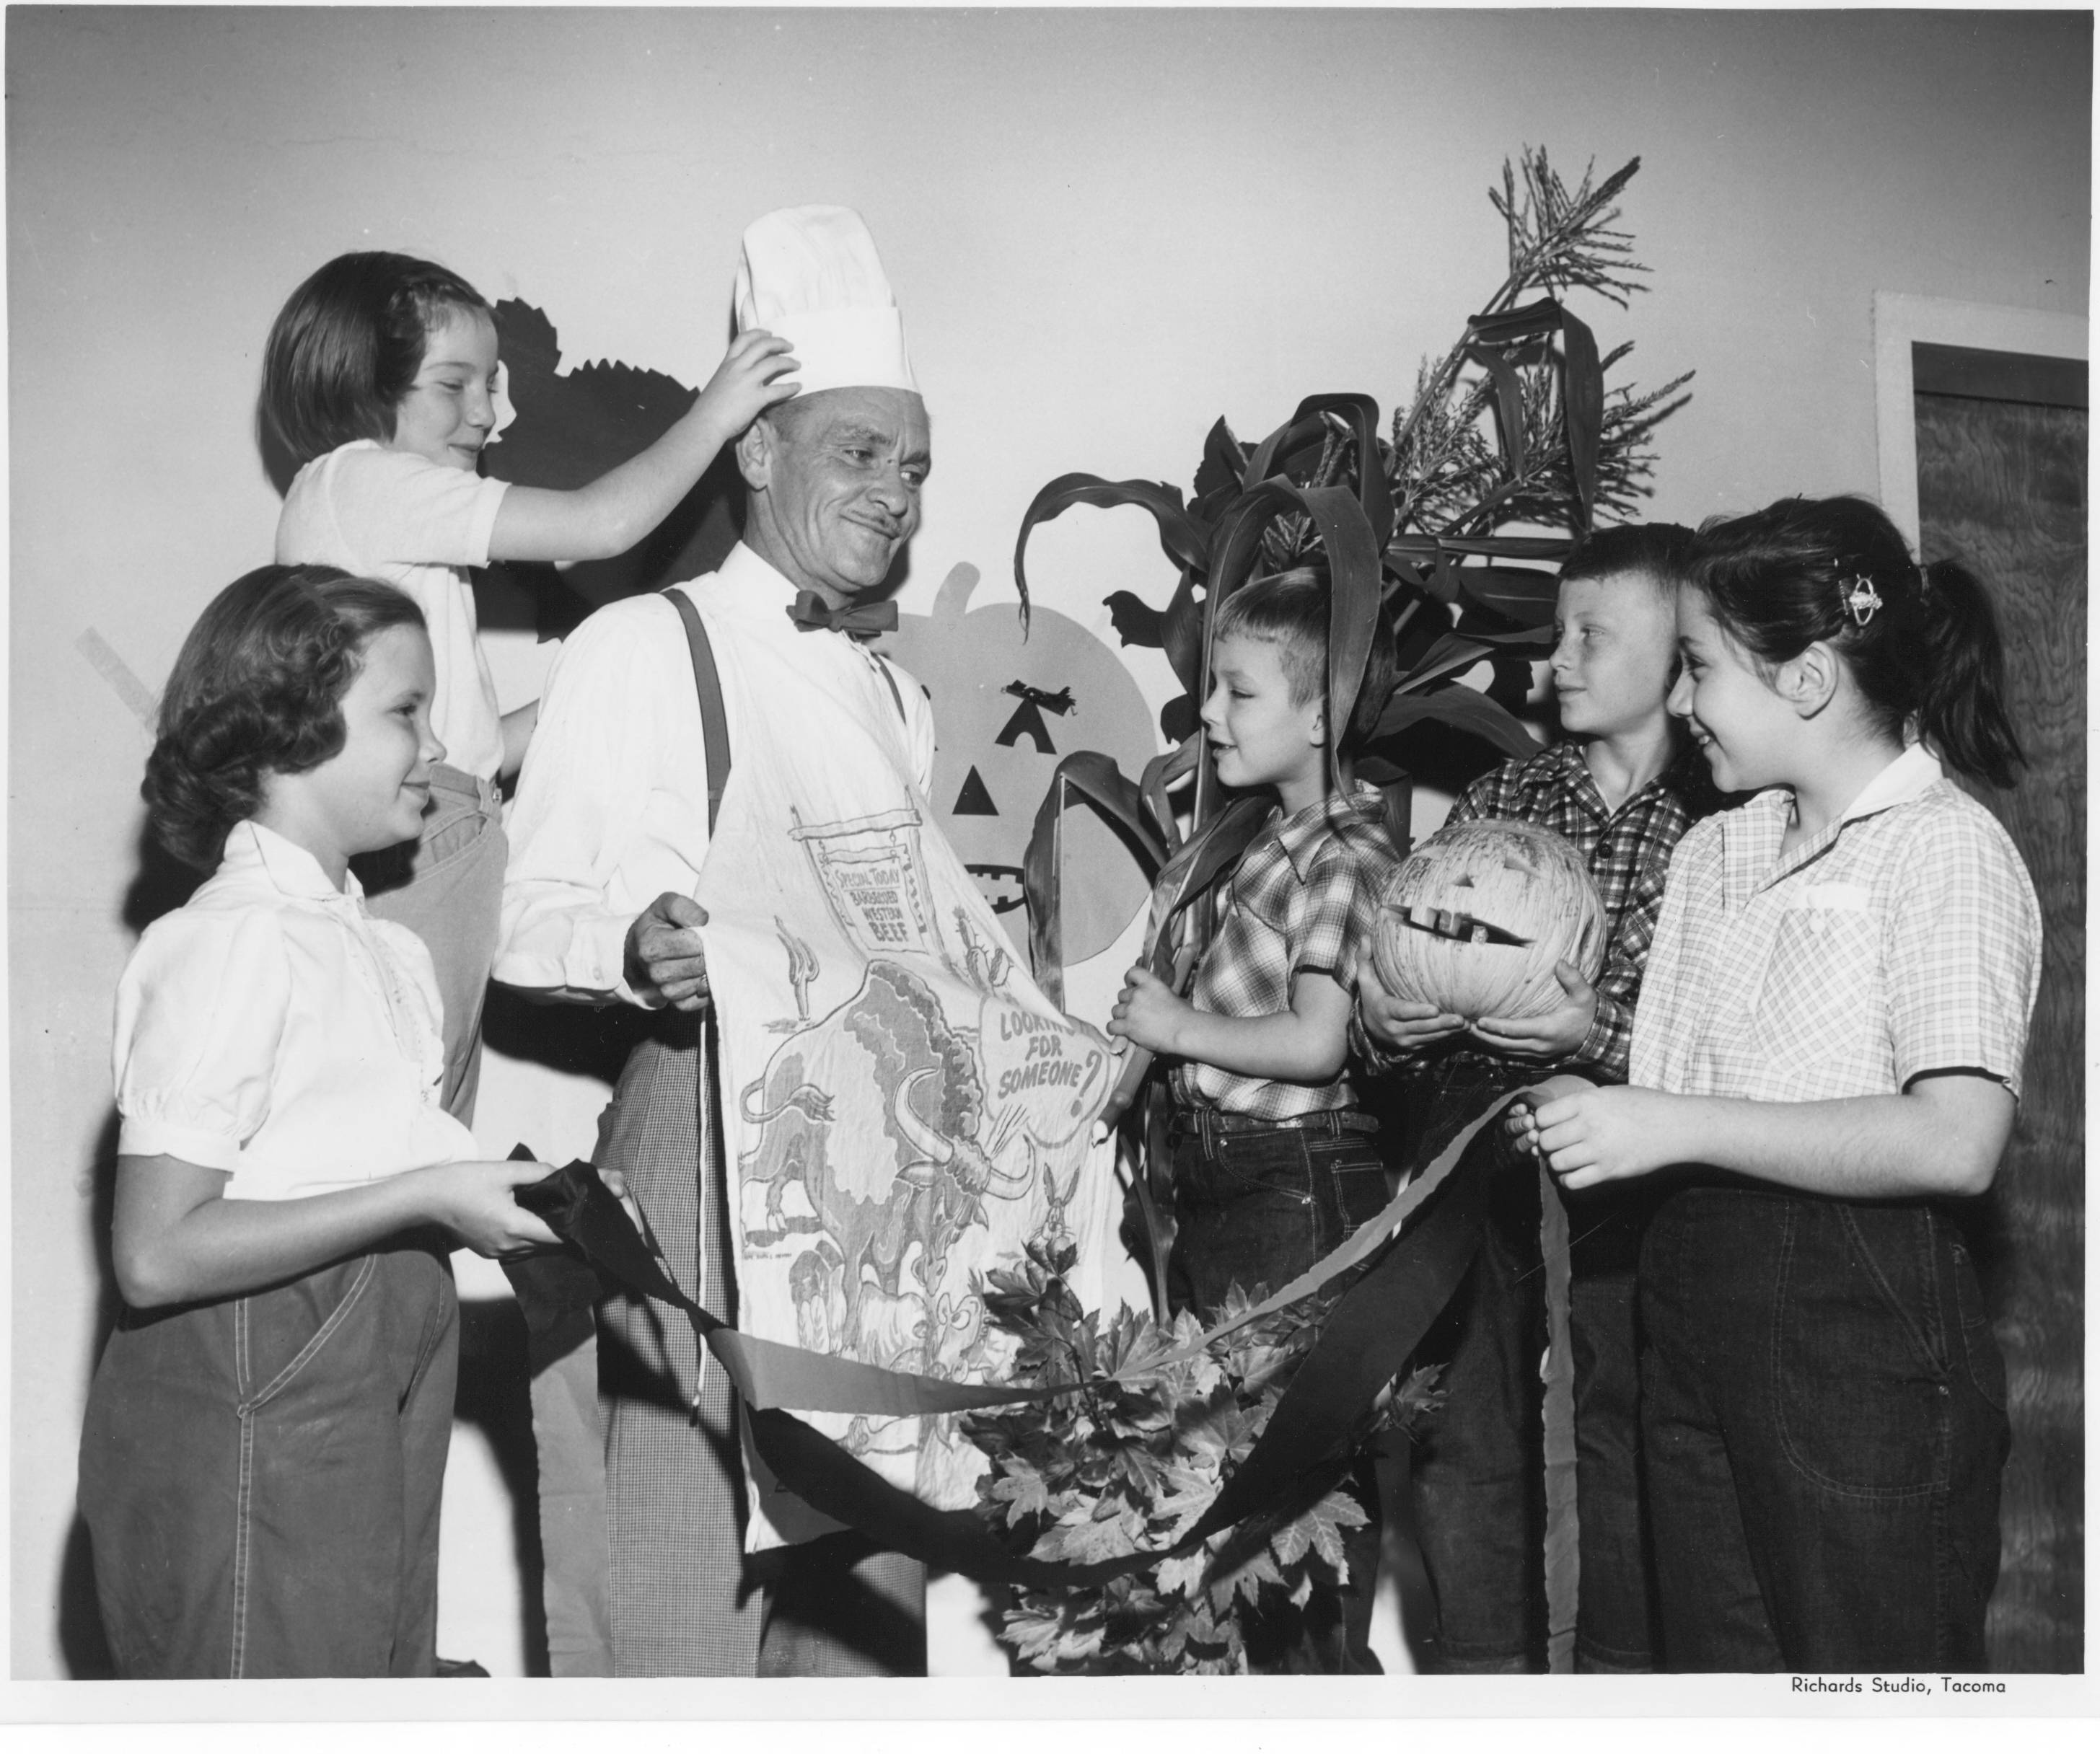 Lowell students and their principal prepare for a howling good time at the '53 Halloween Carnival. The Lowell School Parent-Teacher and Preschool Association sponsored a school carnival on Friday October 23, 1953. Pictured left to right are Sammie Warren, Nancy Conly, principal Clarence Monson, Andy Levesque, Tommy Rowland and Judith Sleep.With his chef's hat and apron, Principal Monson looks as if he'll be manning the hot dog grill. The carnival midway had over 30 booths including fun booths where students could throw darts at balloons or shoes at stuffed animals; food booths with ice cream, hot dogs and pop corn; and craft booths where they could make decorations or put on make-up.